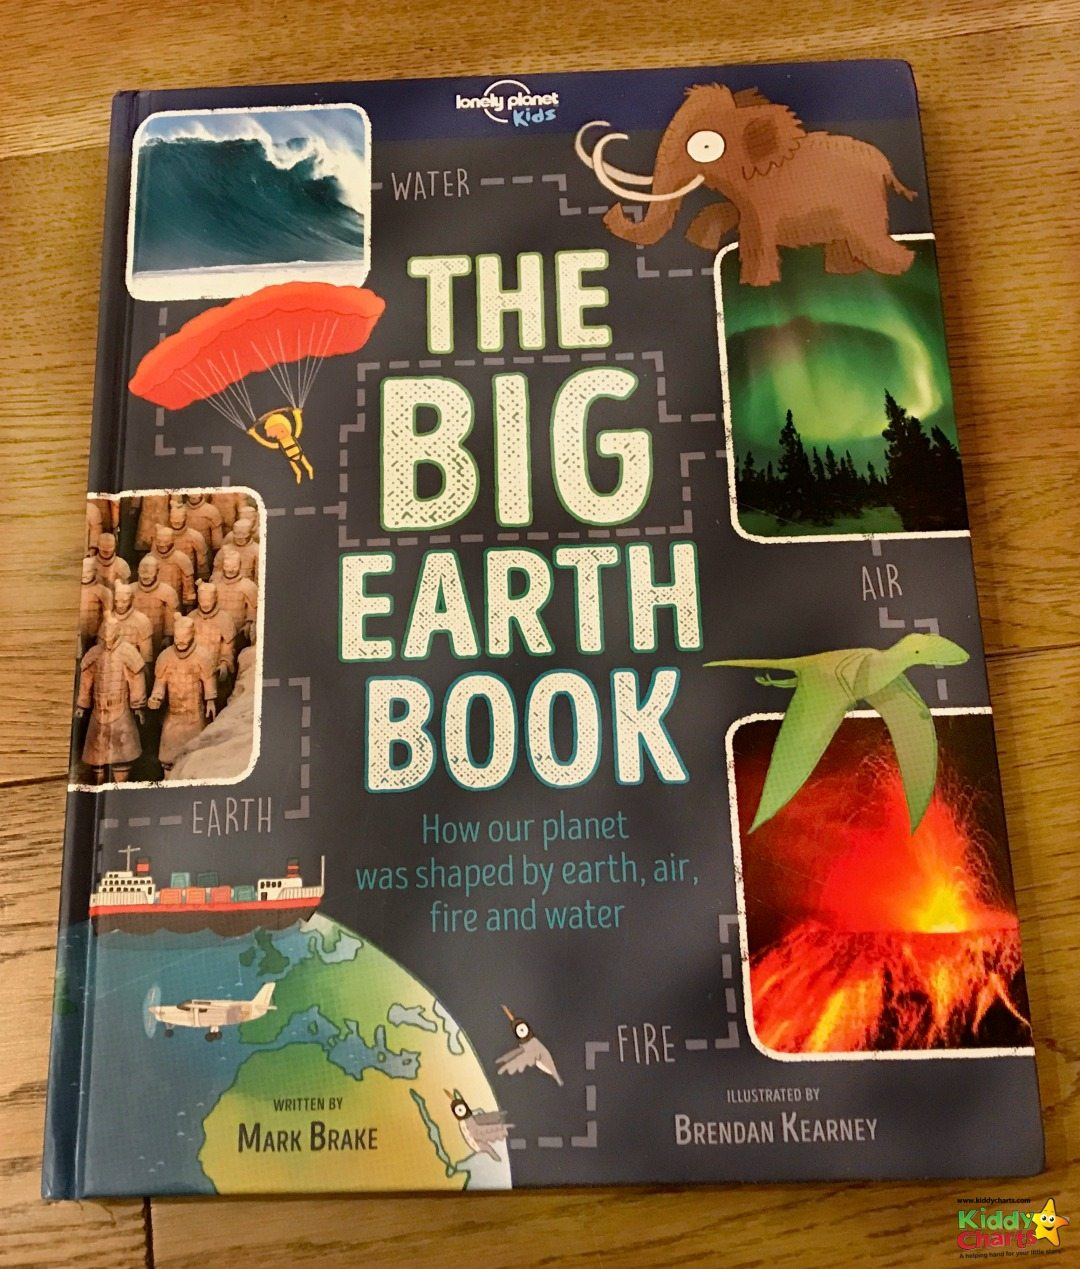 This is a great book for the kids - the Big Earth Book - explore all the elements in a fun and informative way. Thanks Lonely Planet Kids.